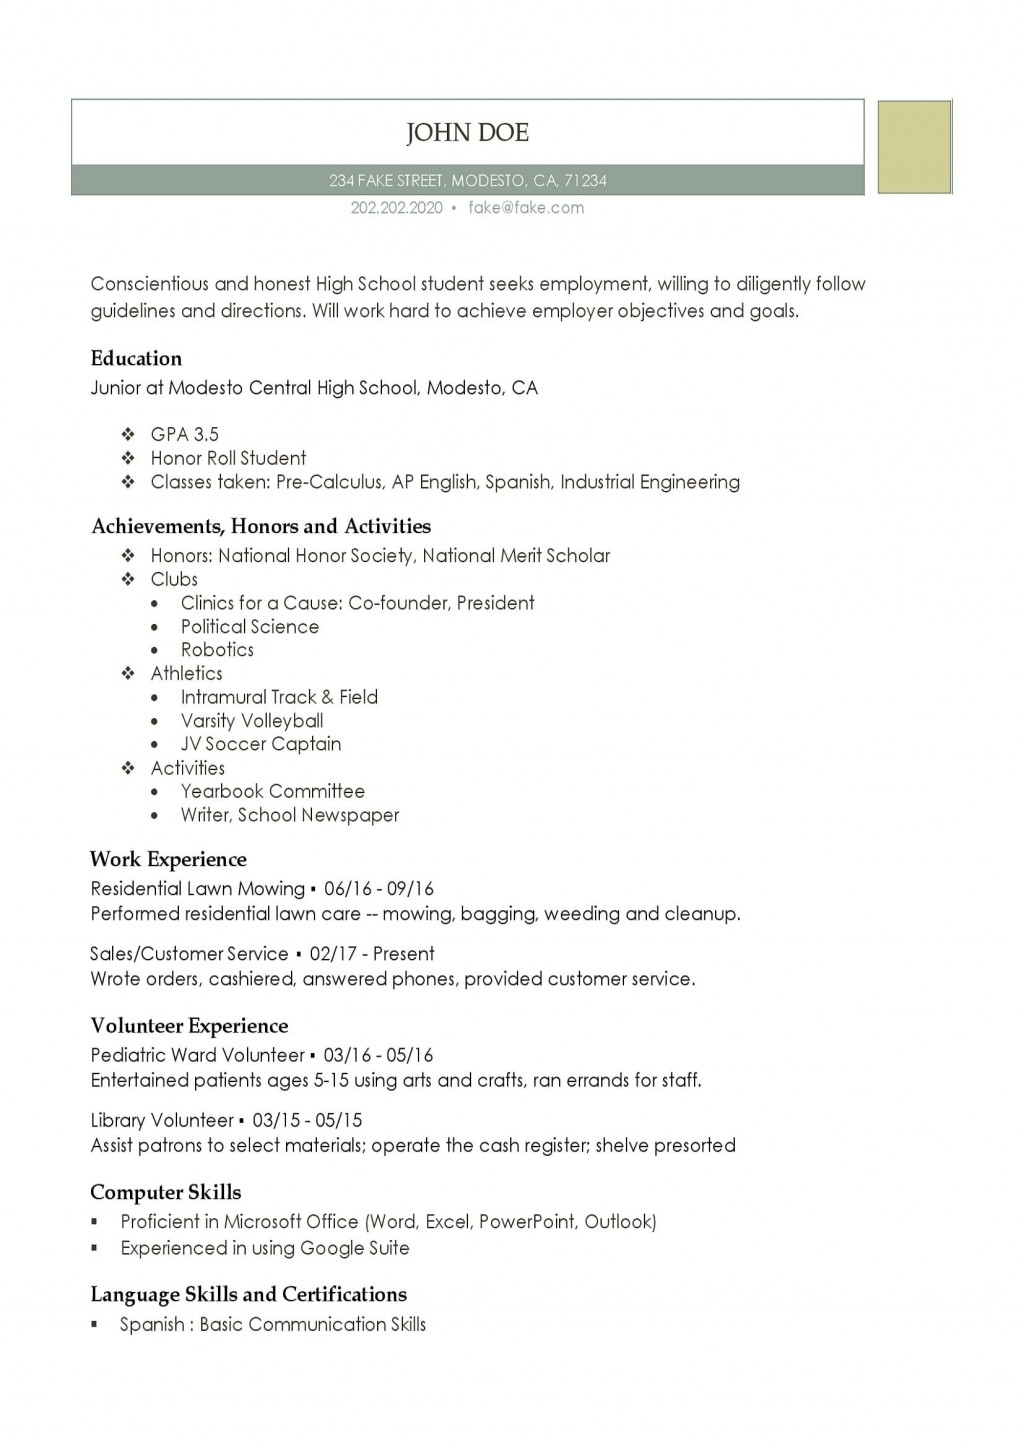 003 Unforgettable Free High School Resume Template Microsoft Word Inspiration Large